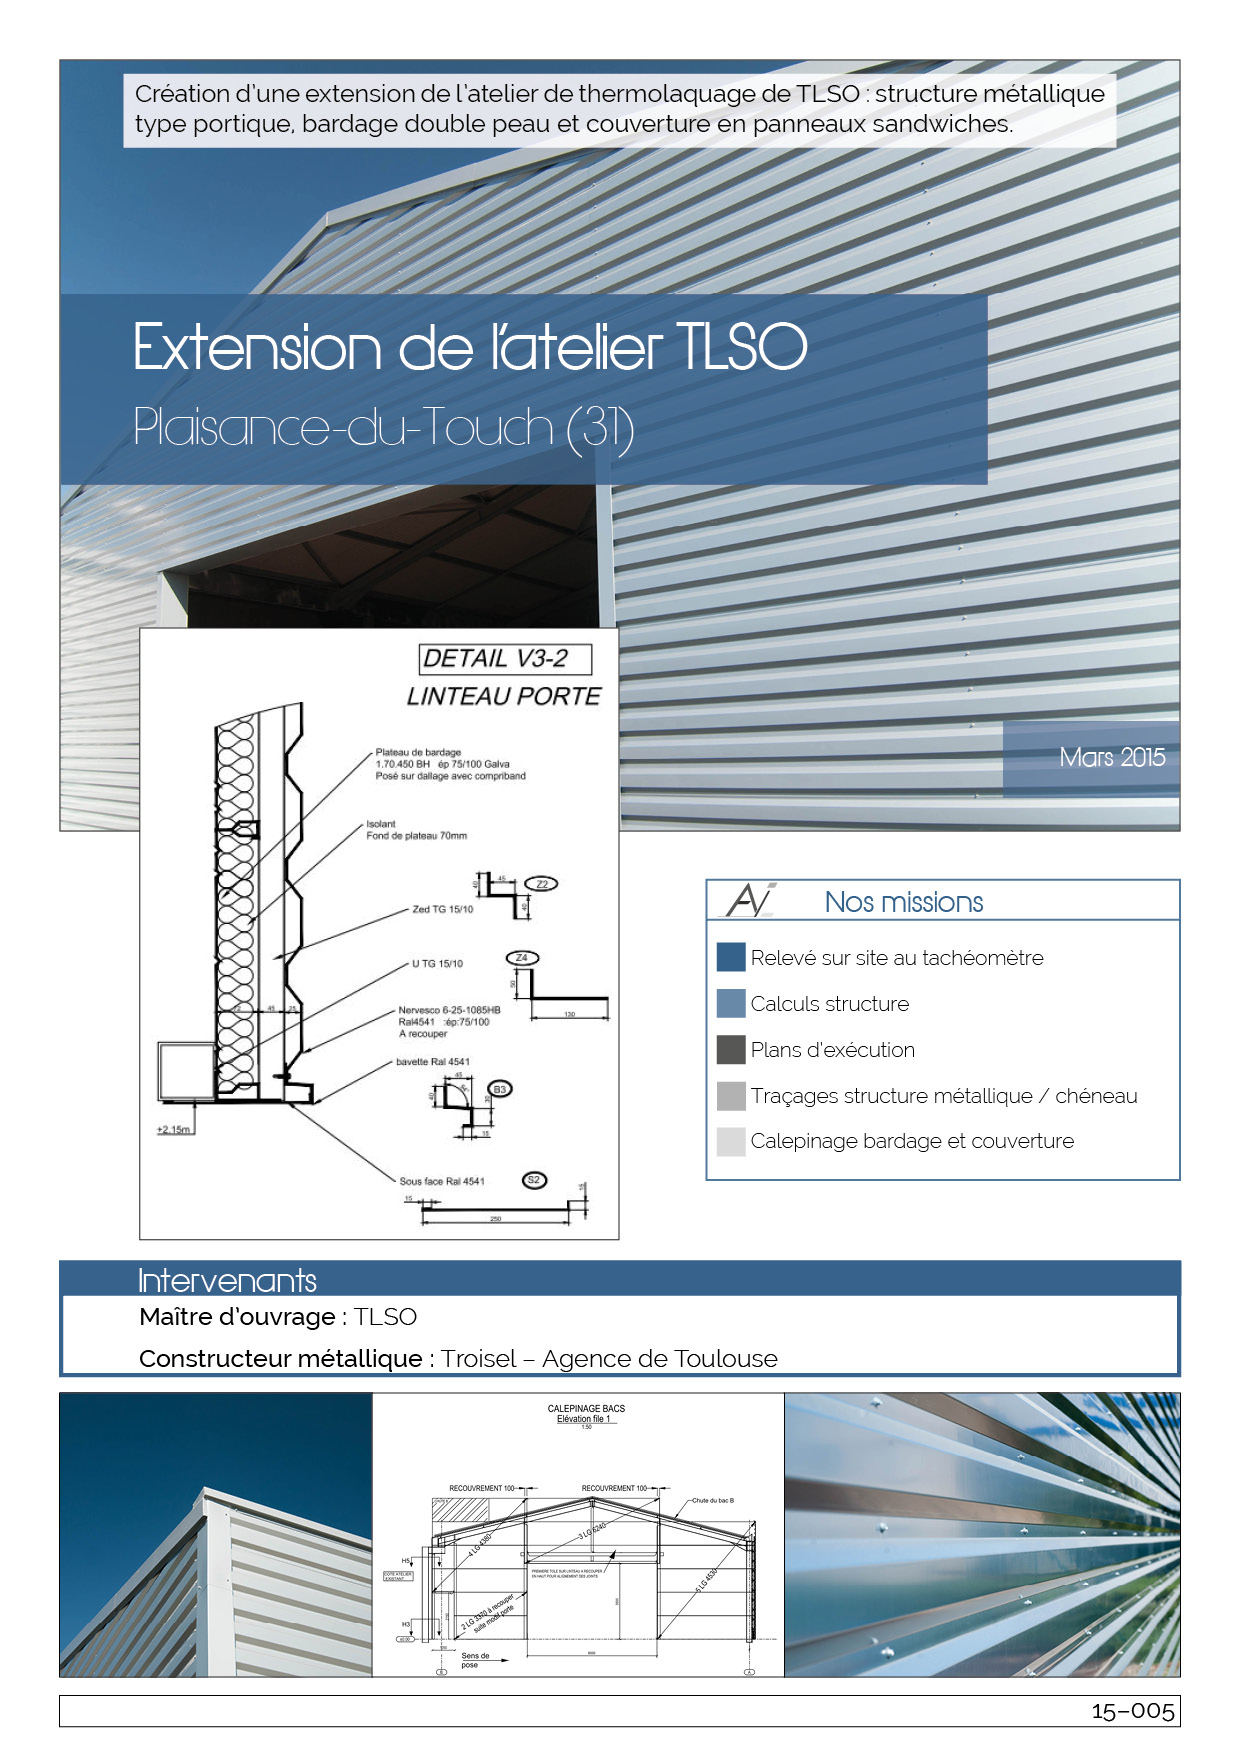 15-005 TLSO Extension